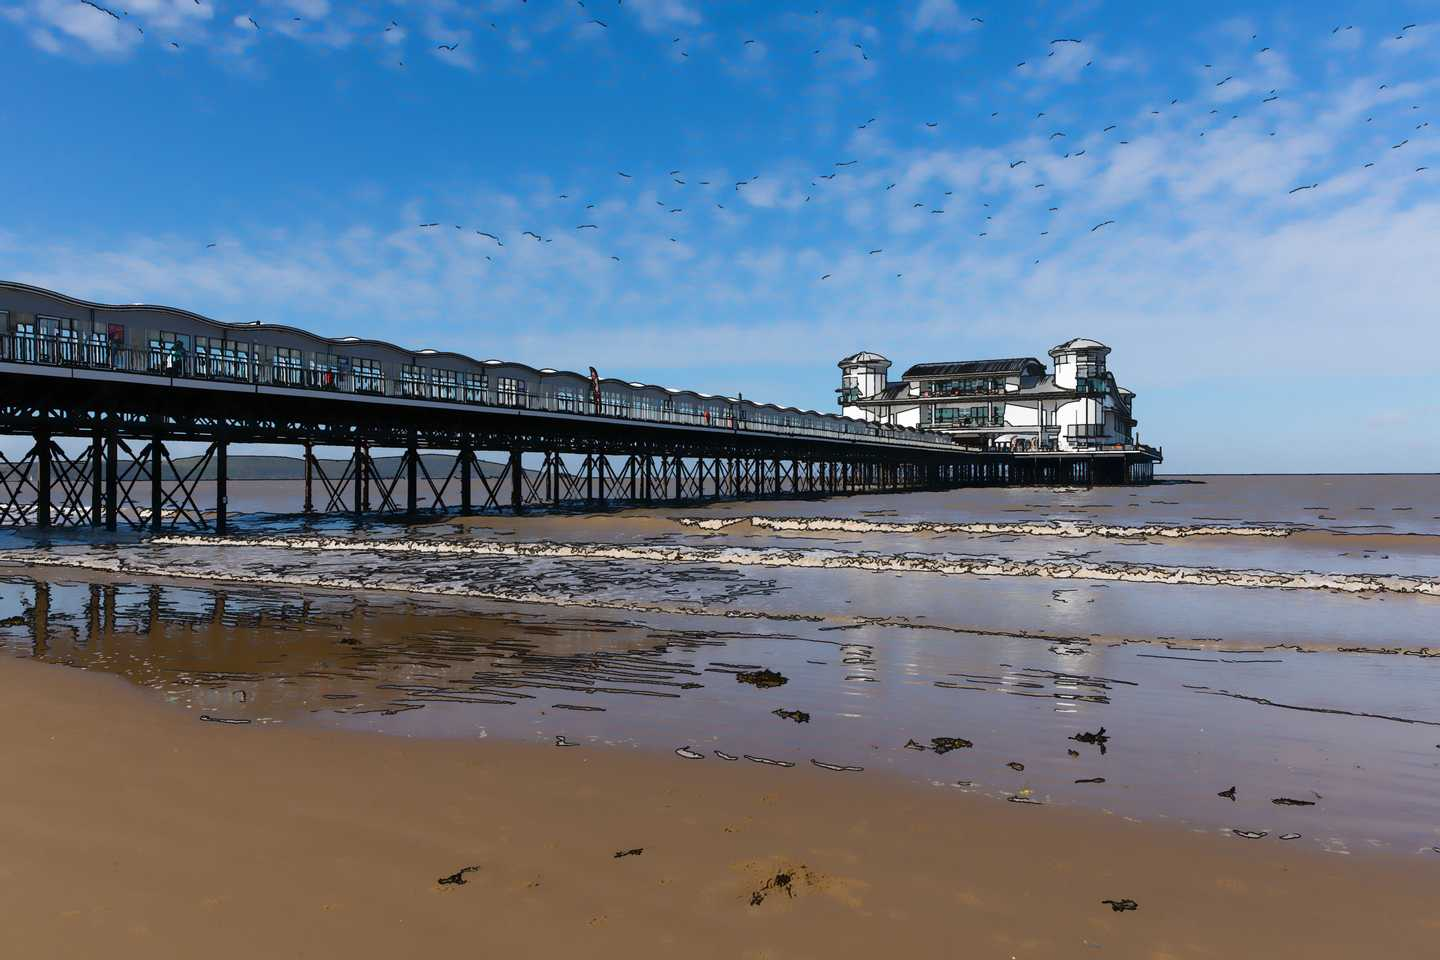 Weston-super-Mare seaside resort in Somerset